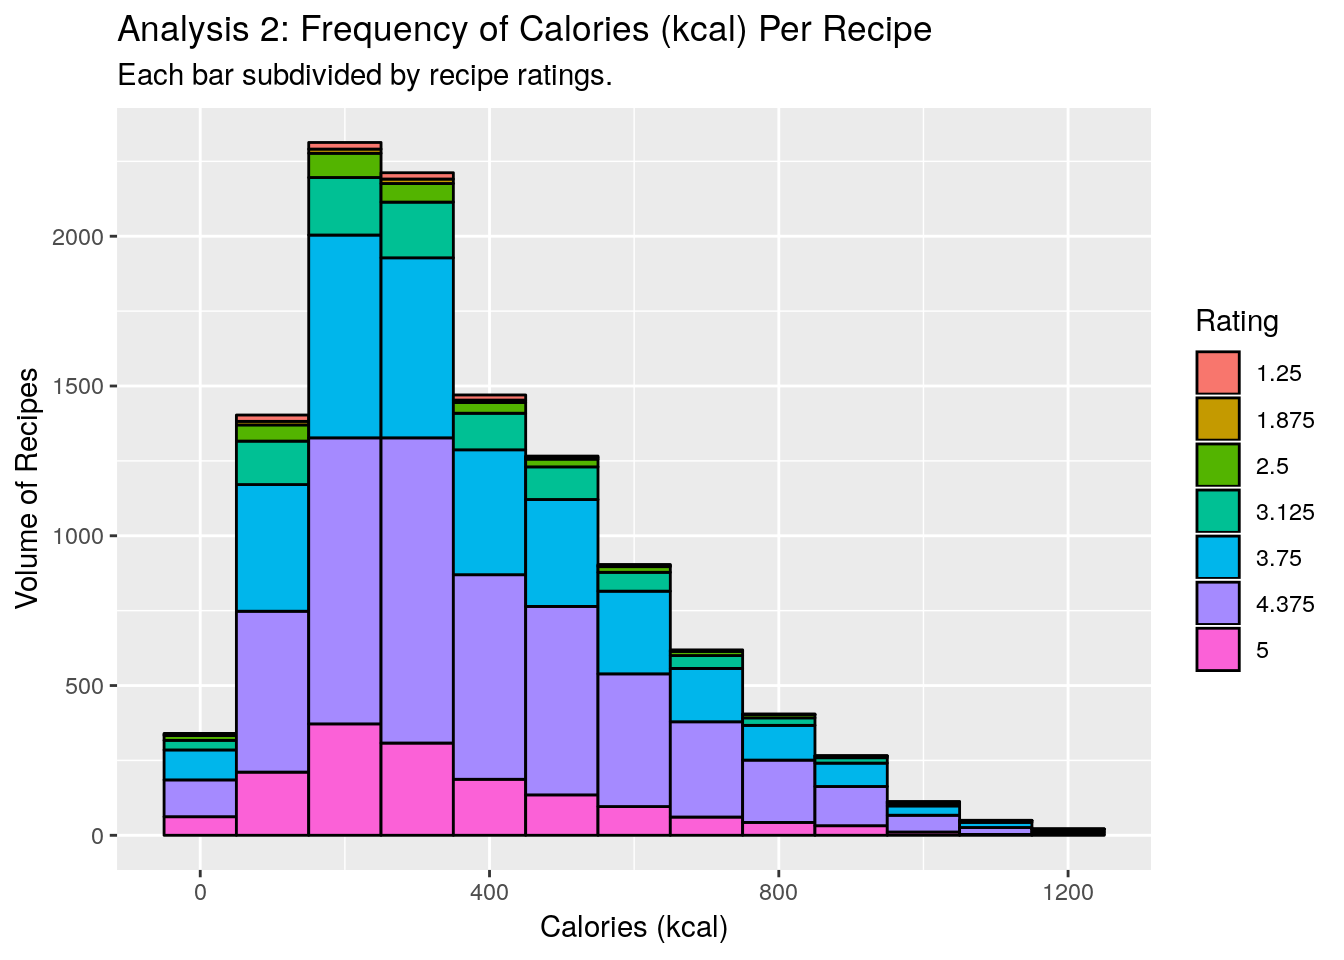 calorie-frequency-3.png